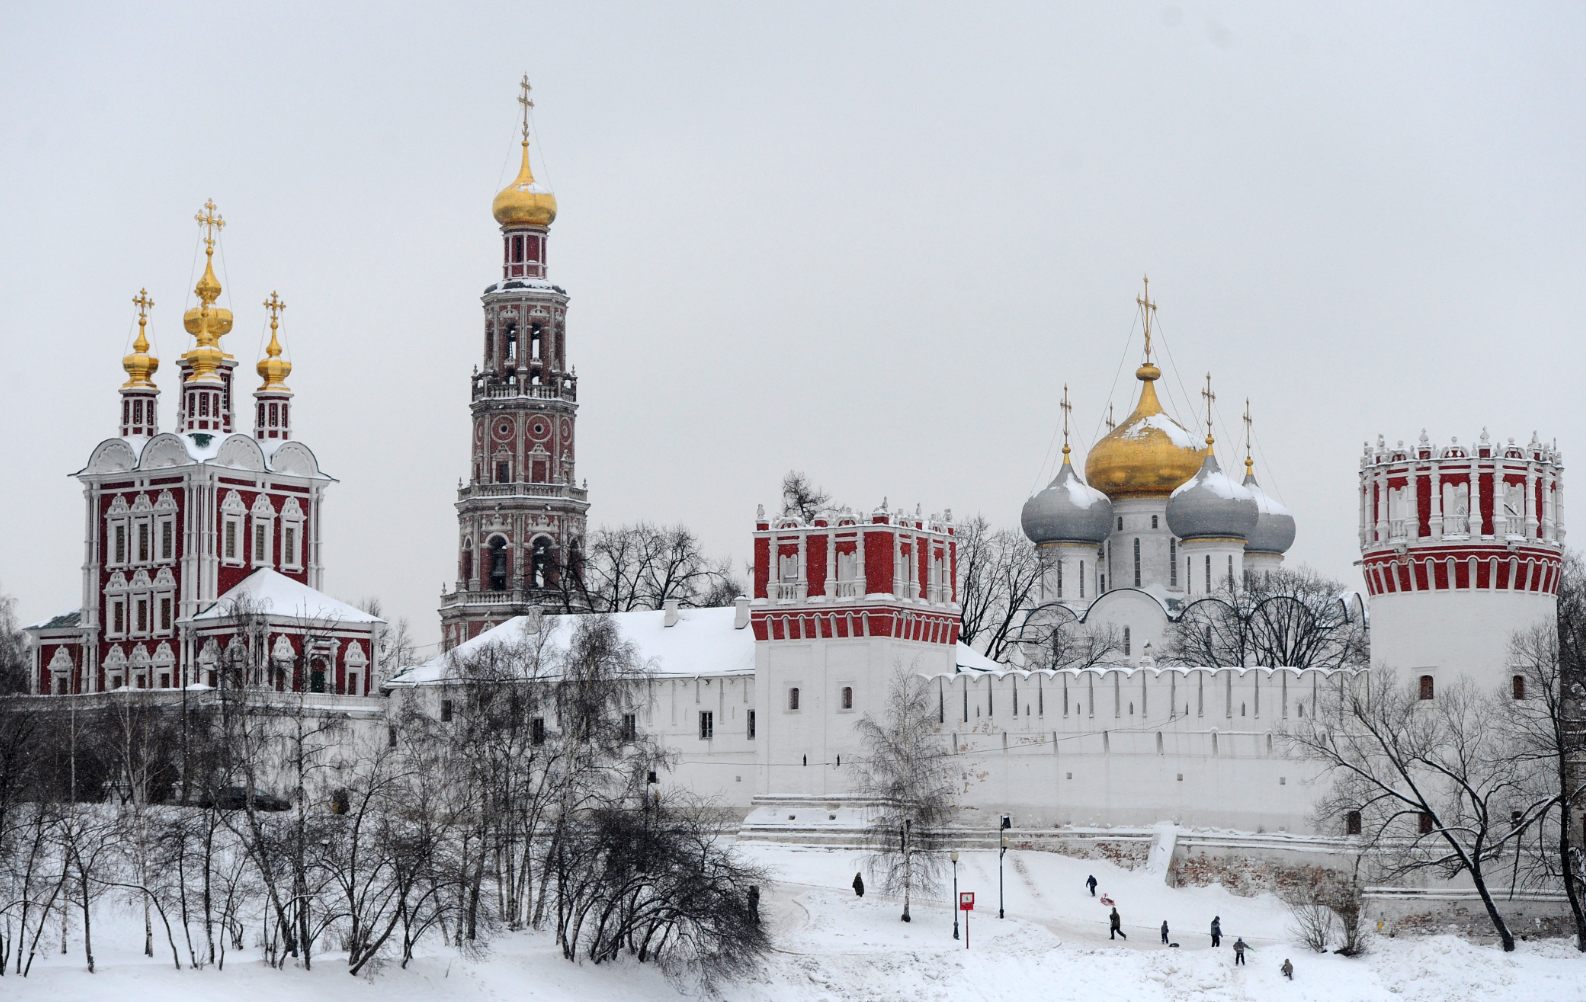 Novodevichy Convent in Moscow.